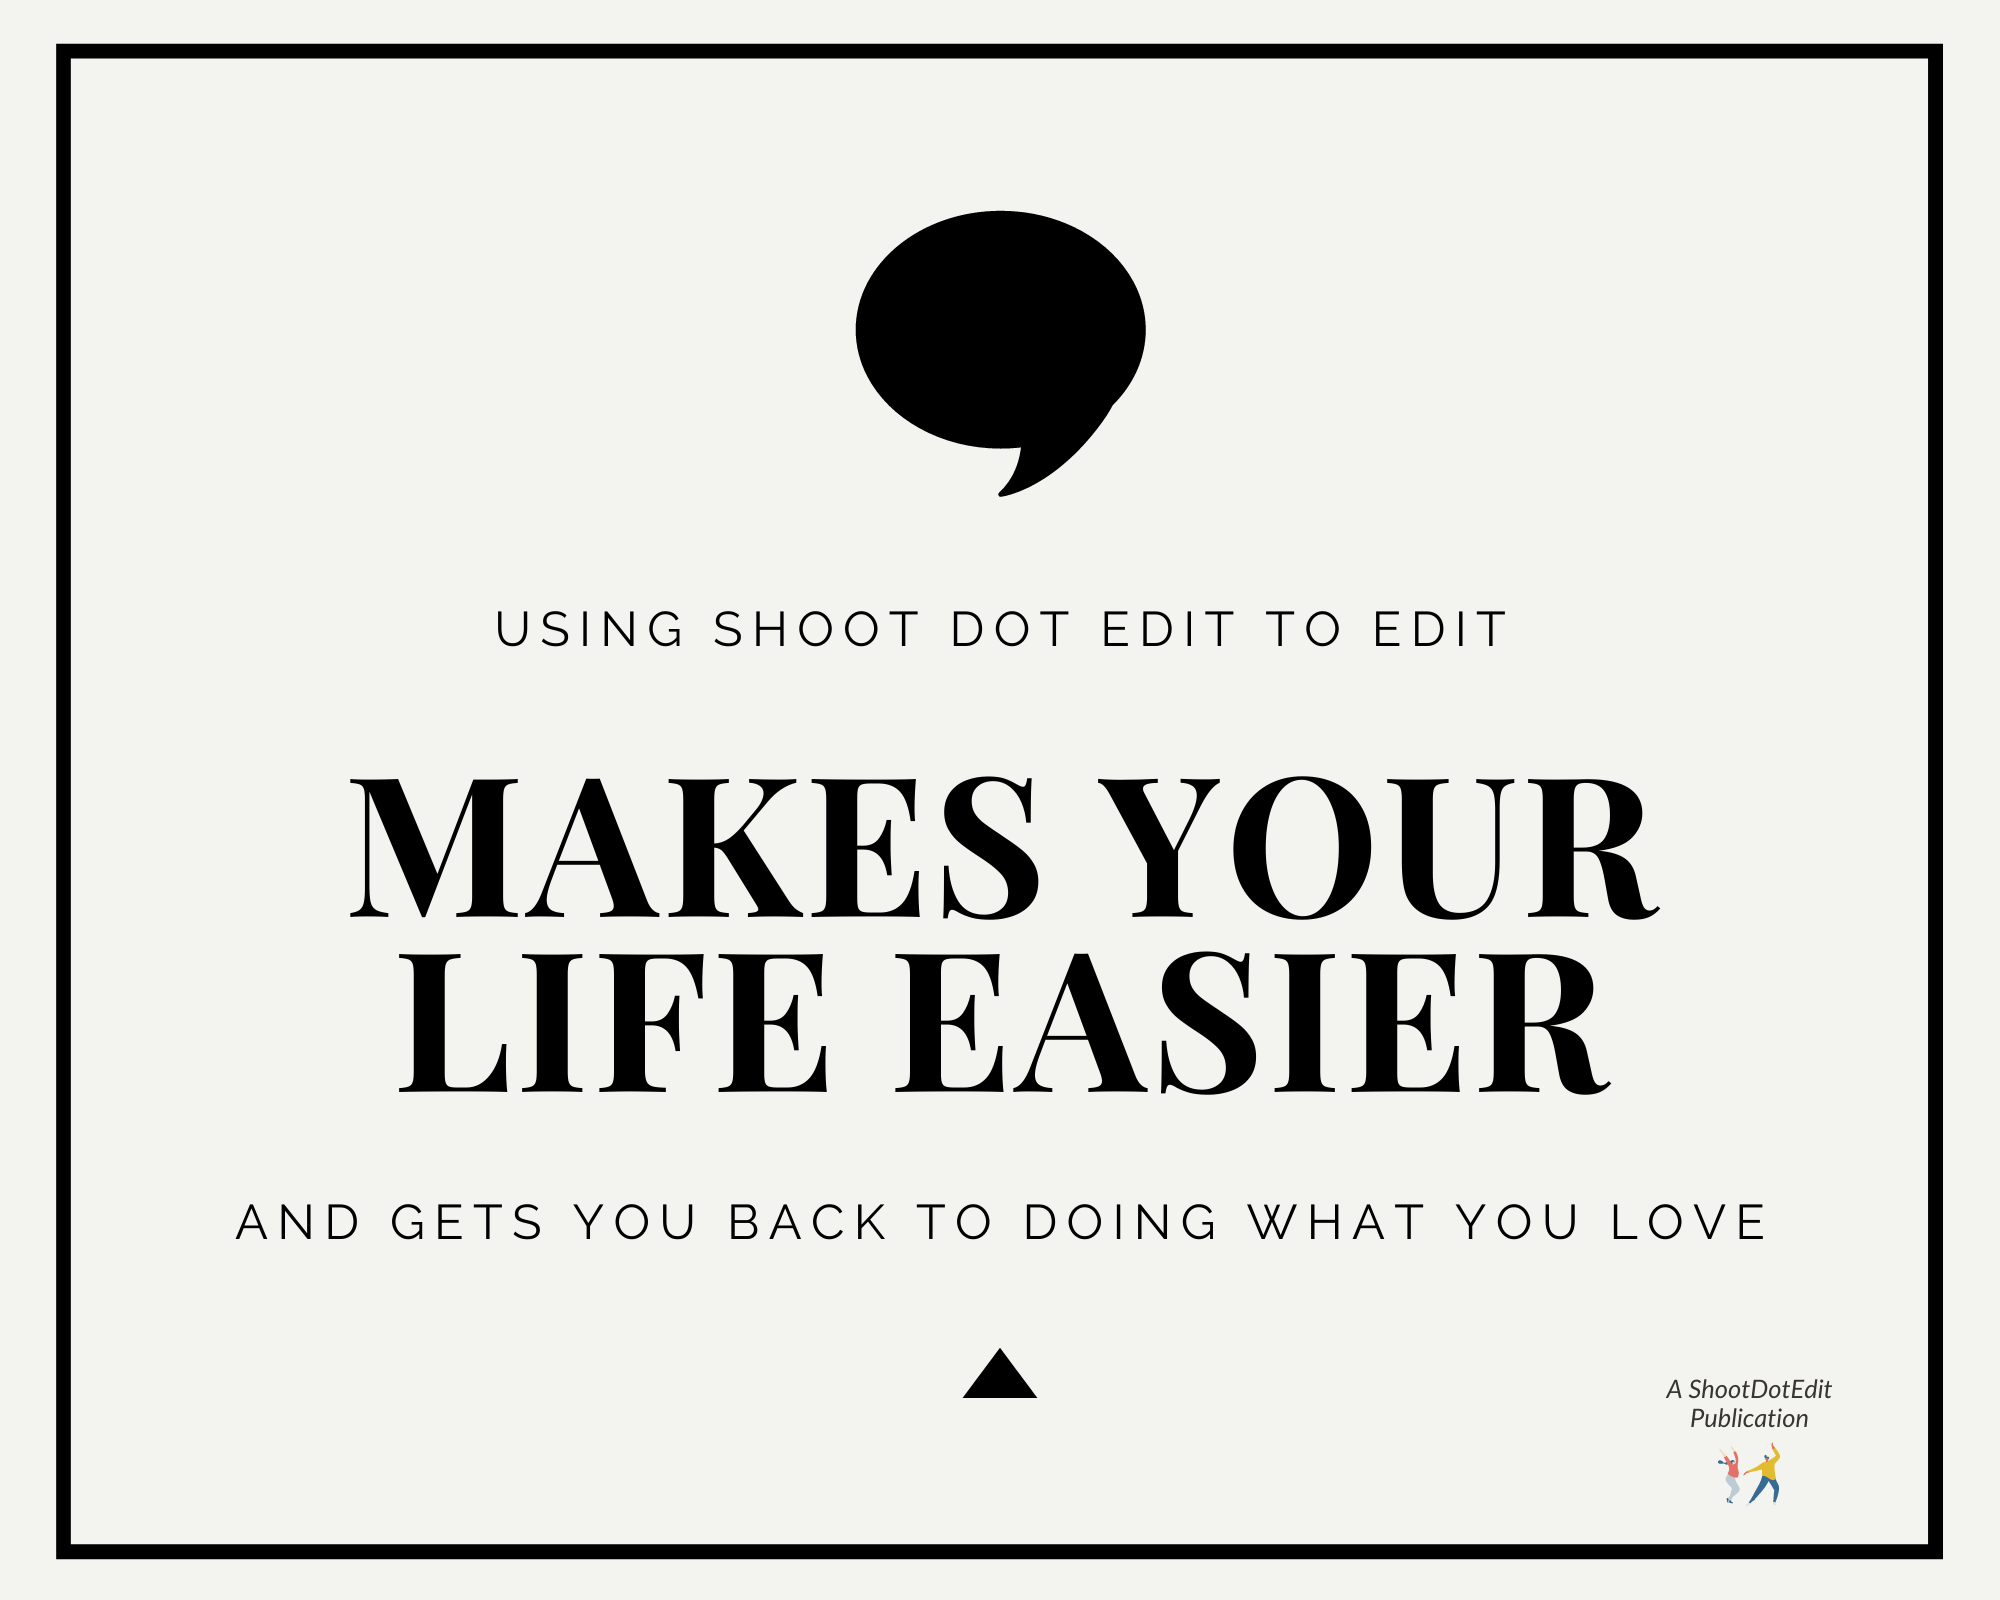 Infographic stating using Shoot Dot Edit to edit makes your life easier and gets you back to doing what you love